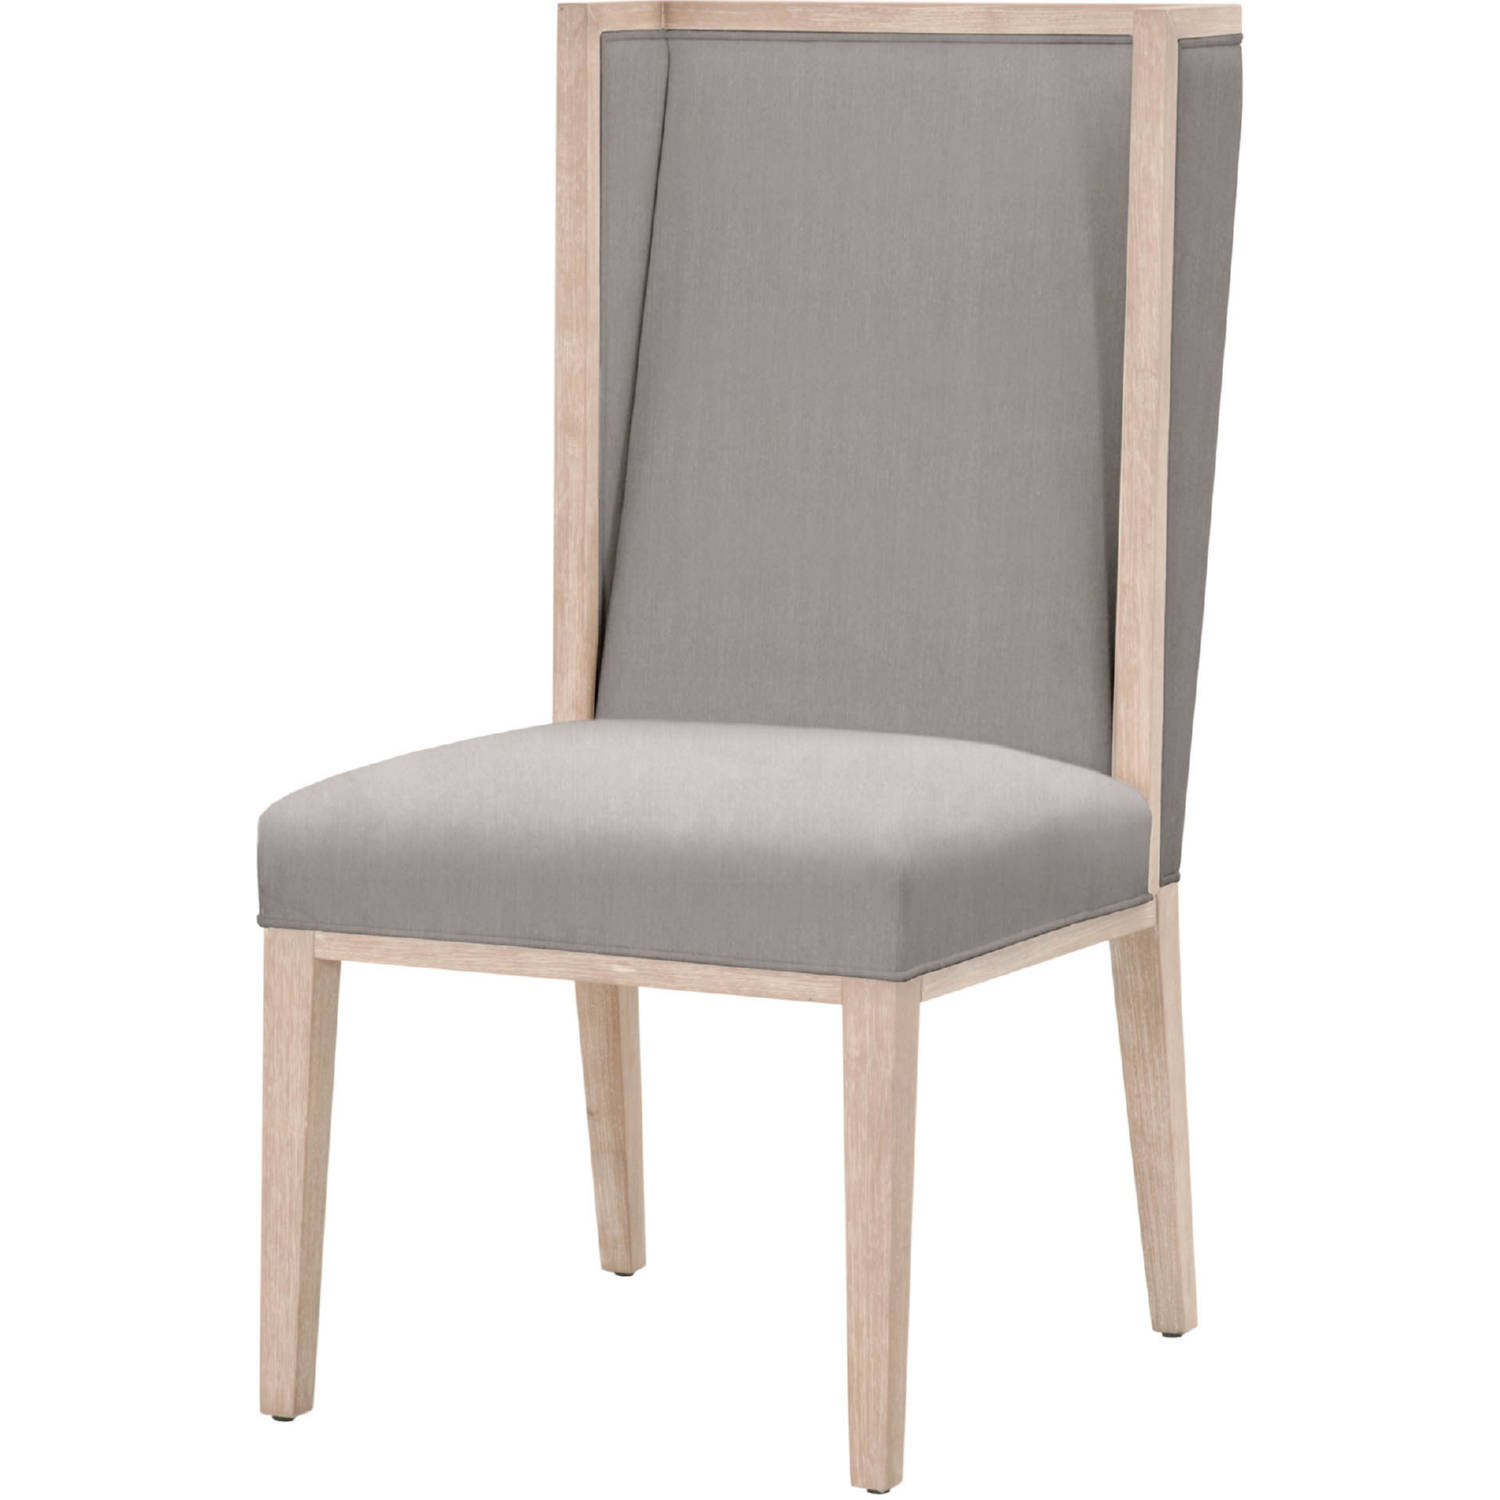 Awesome Martin Wing Back Dining Chair Set Of 2 By Orient Express Furniture Pabps2019 Chair Design Images Pabps2019Com